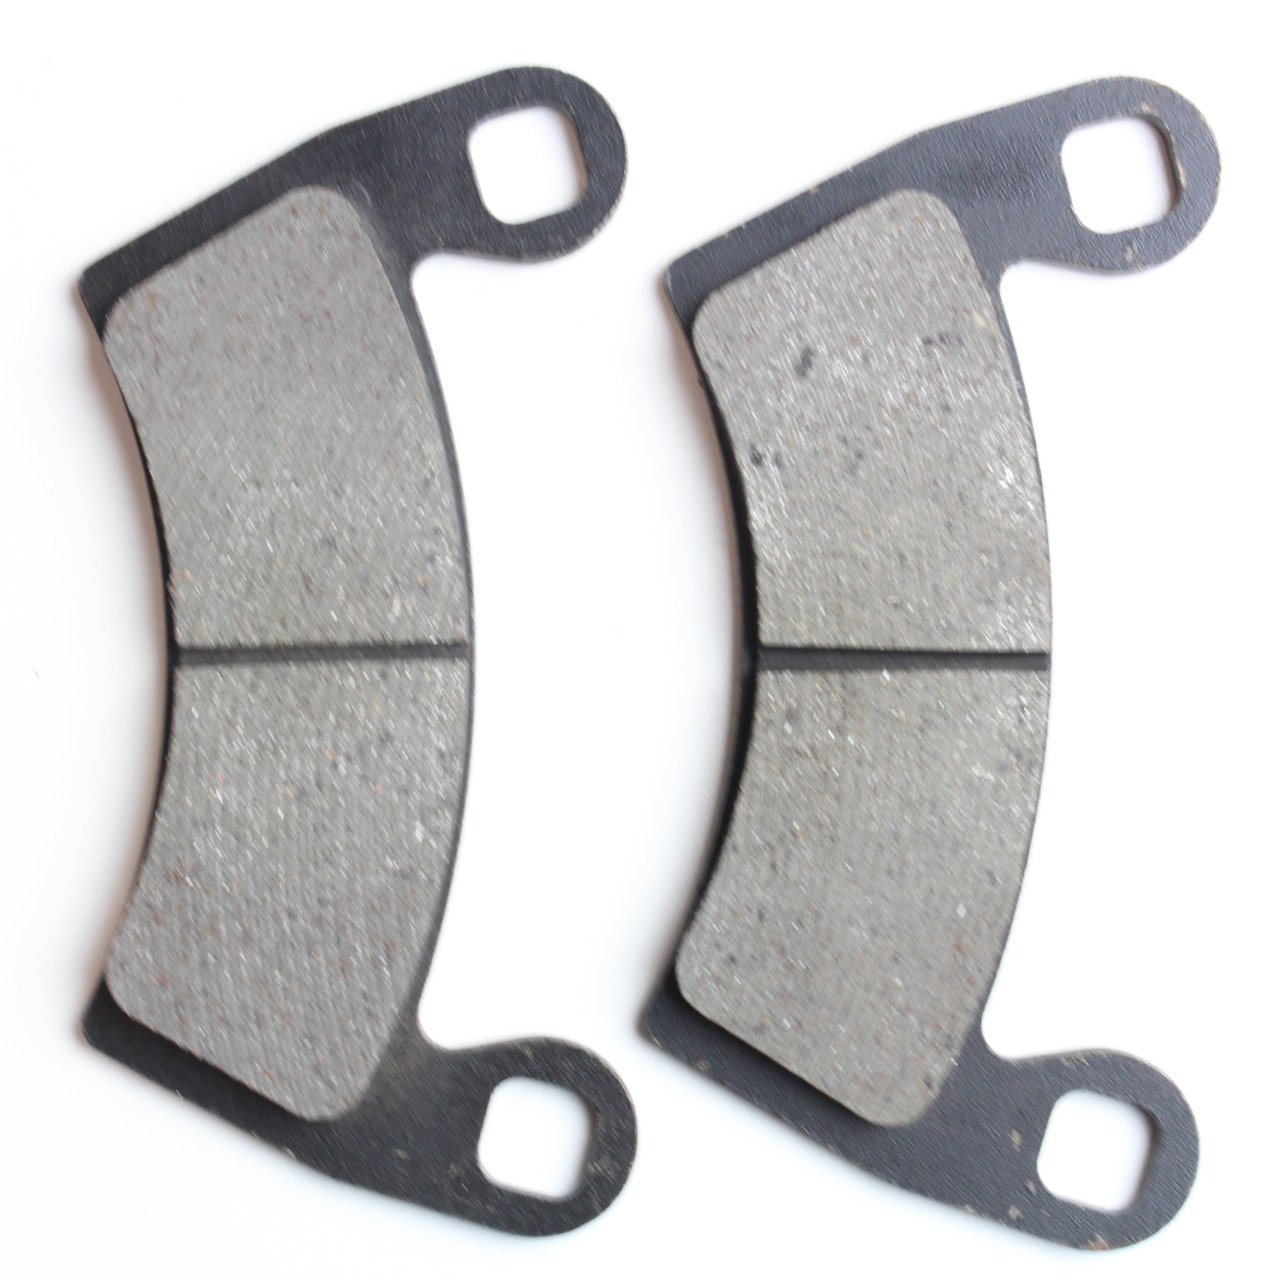 Brake Pad Set 2008-2017 Front/Rear Polaris Ace Ranger RZR Sportsman XP & Diesel Crew SP 325 500 570 900 1000 2205949